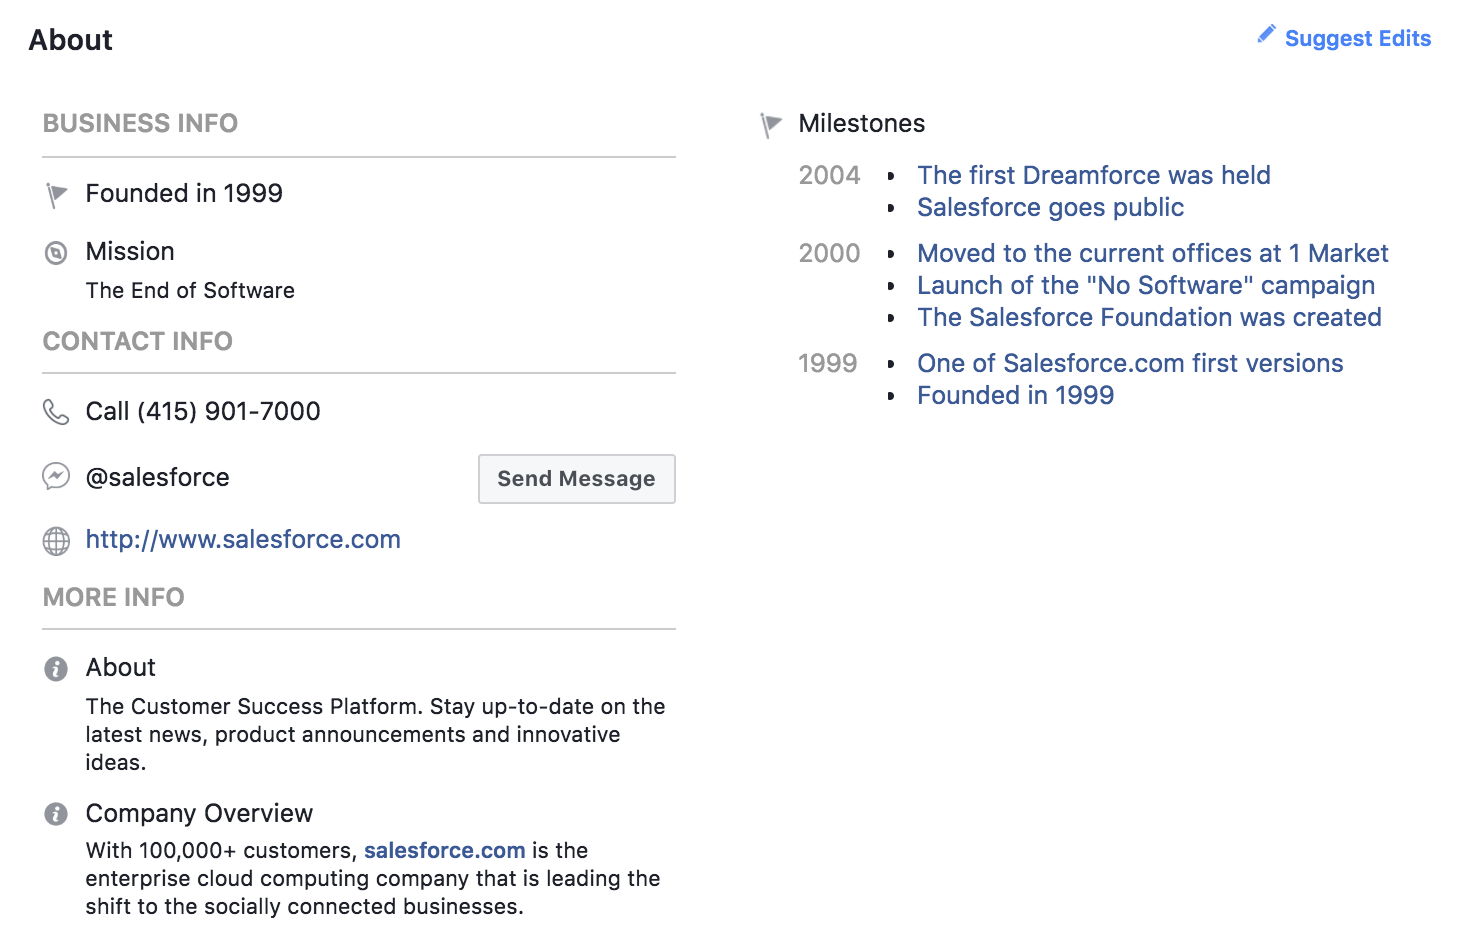 Salesforce about section